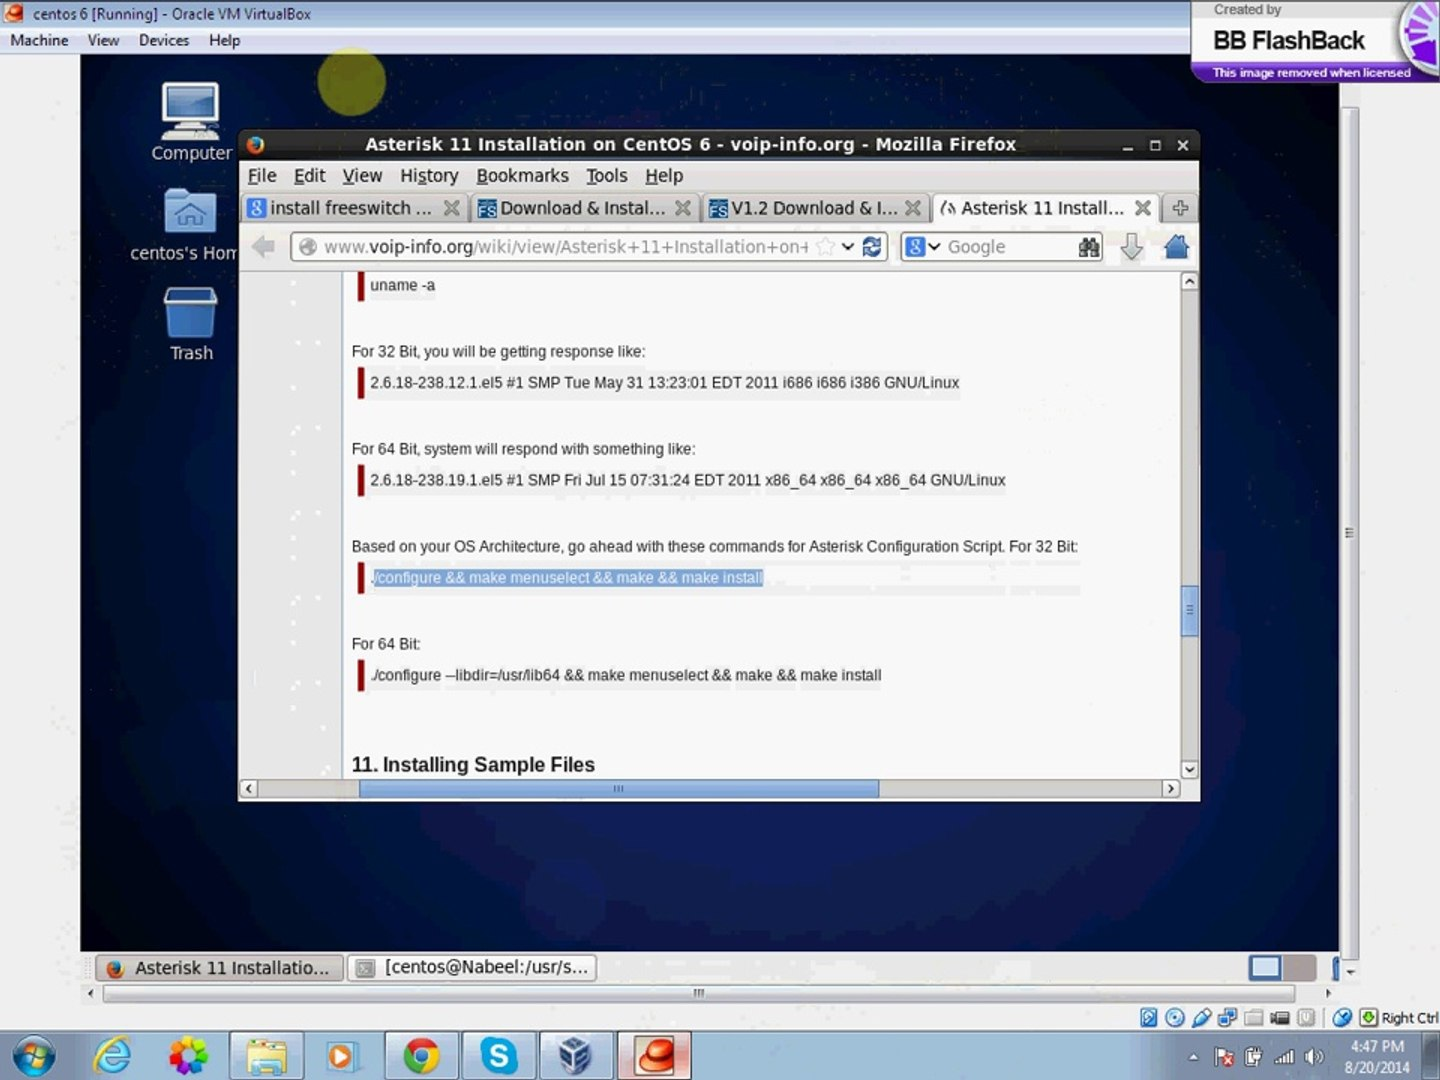 How to install and configure Asterisk on Centos 6 5 - video